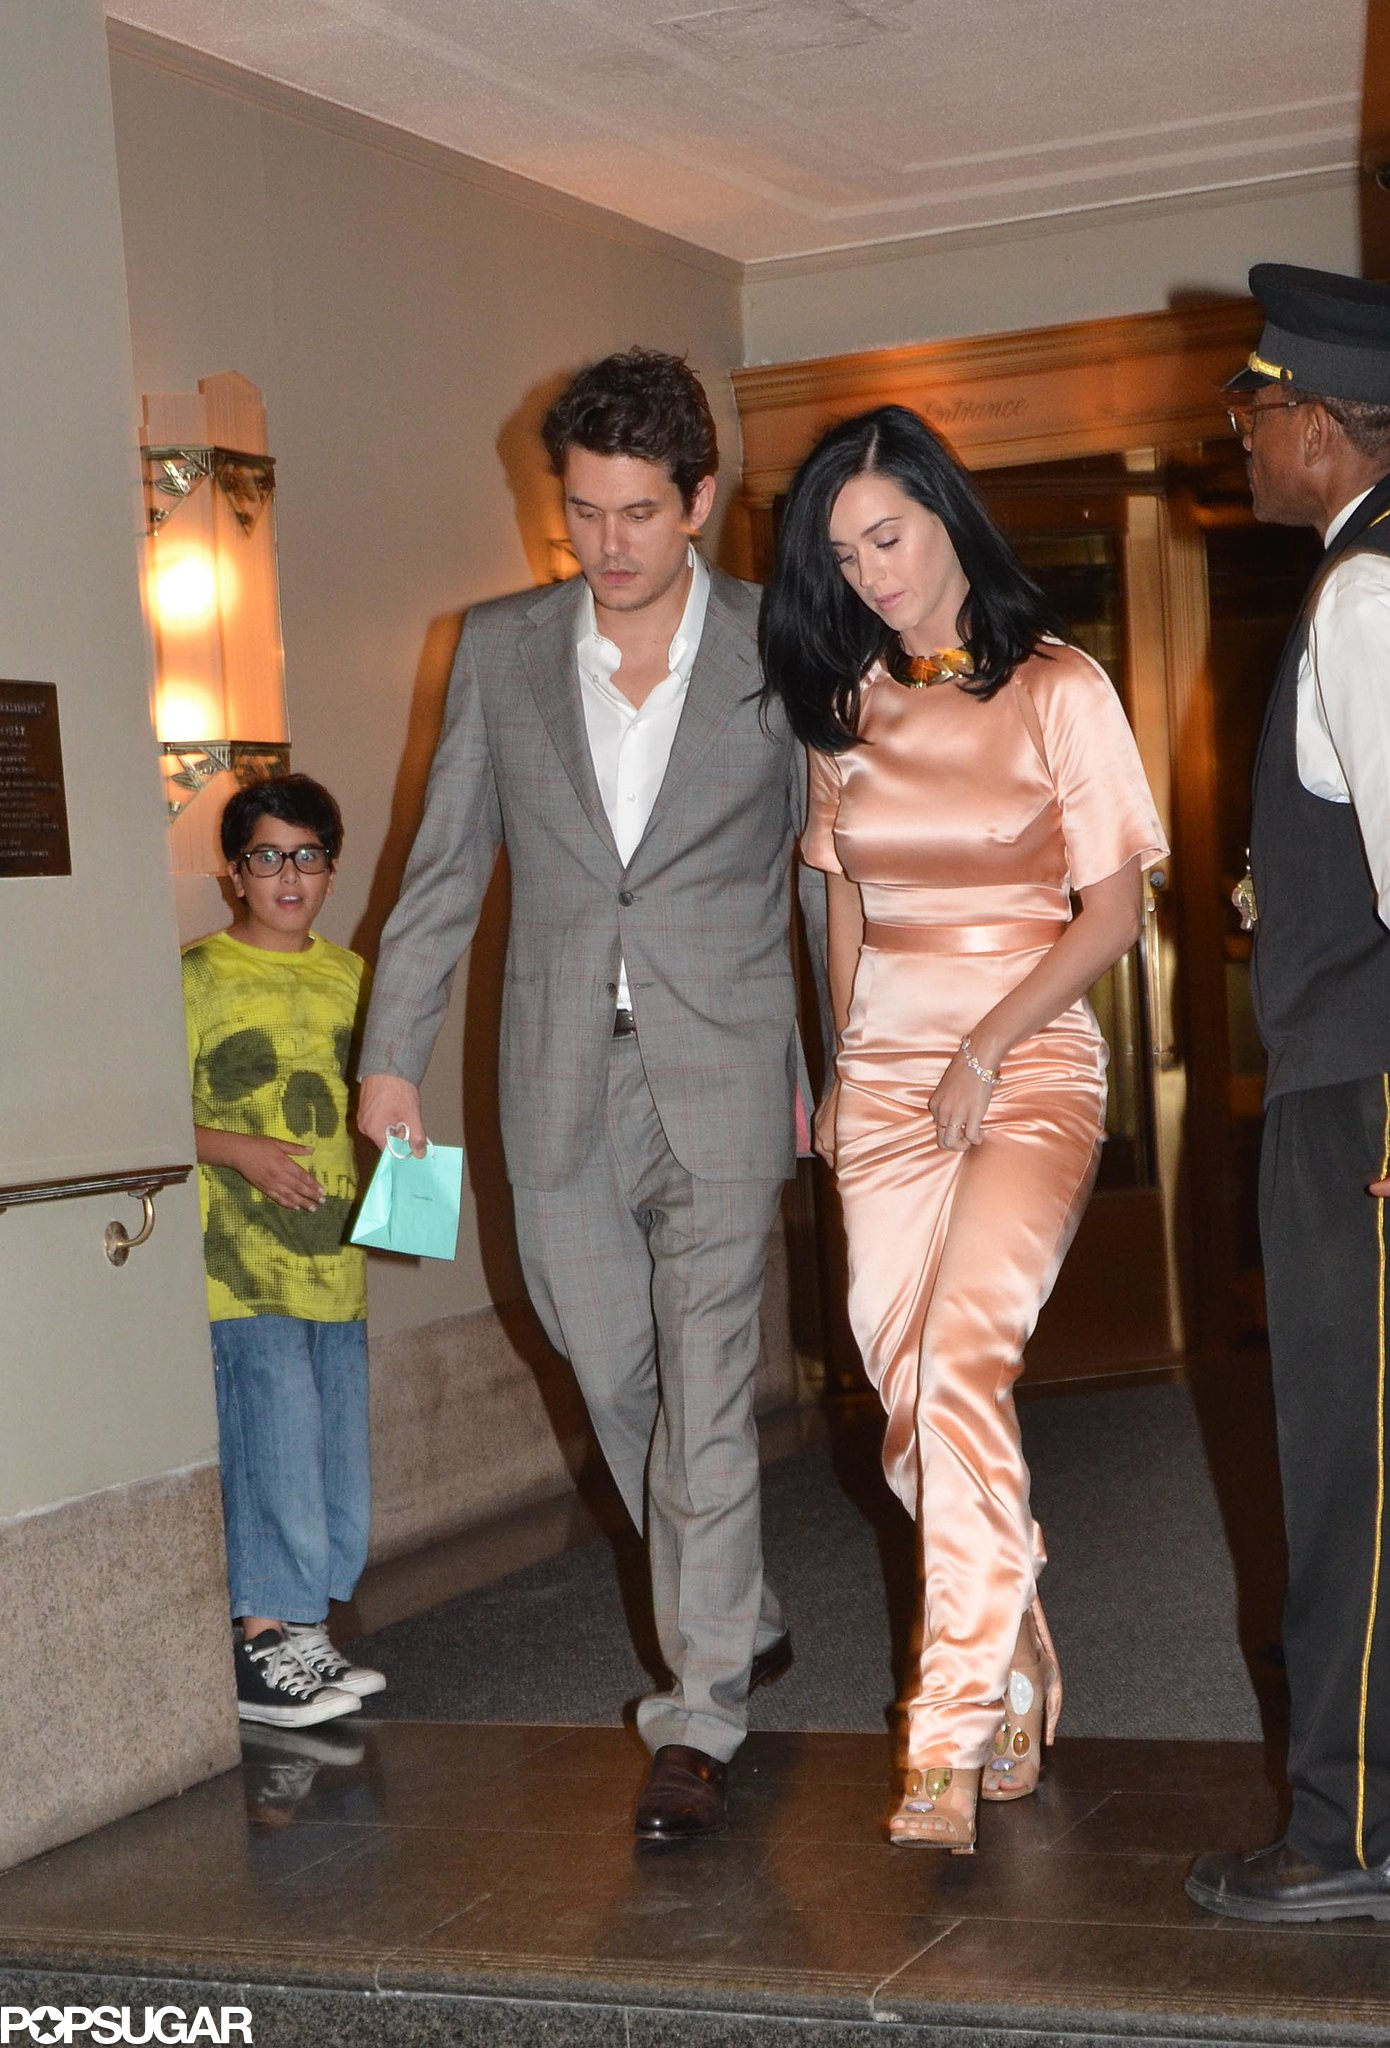 John Mayer and Katy Perry were together in NYC.